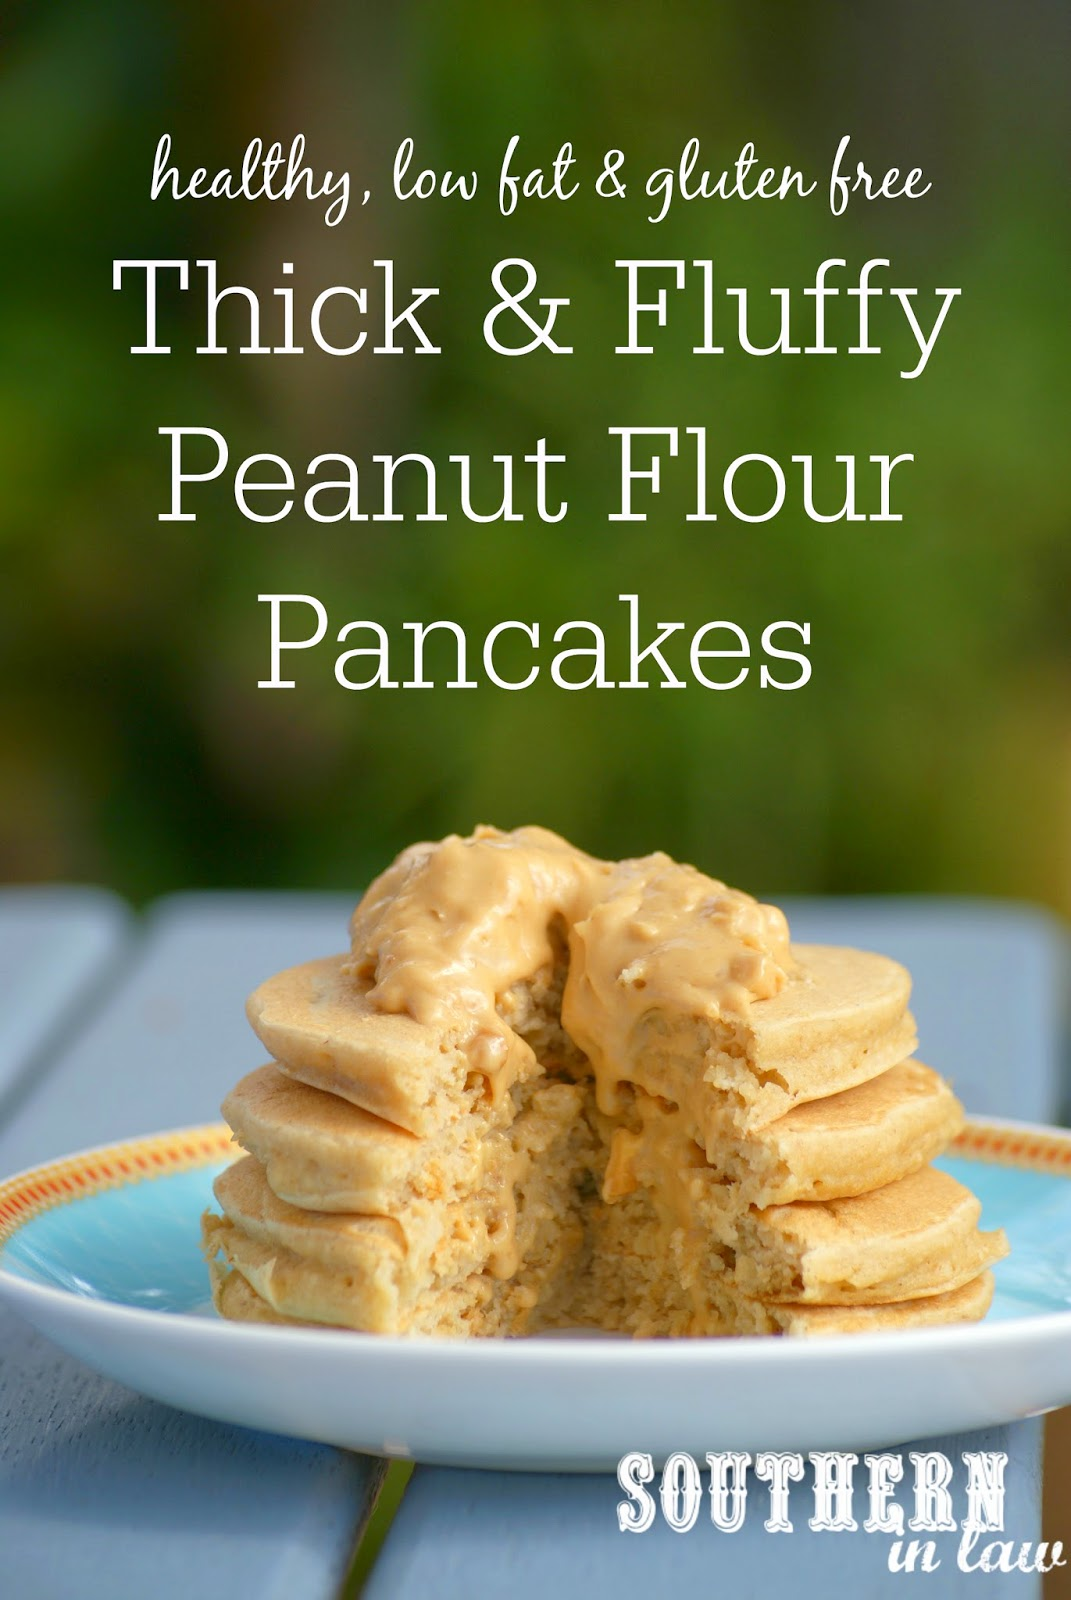 Healthy Thick and Fluffy Peanut Flour Pancakes Recipe - low fat, gluten free, refined sugar free, peanut flour recipes, healthy pancake recipes, high protein